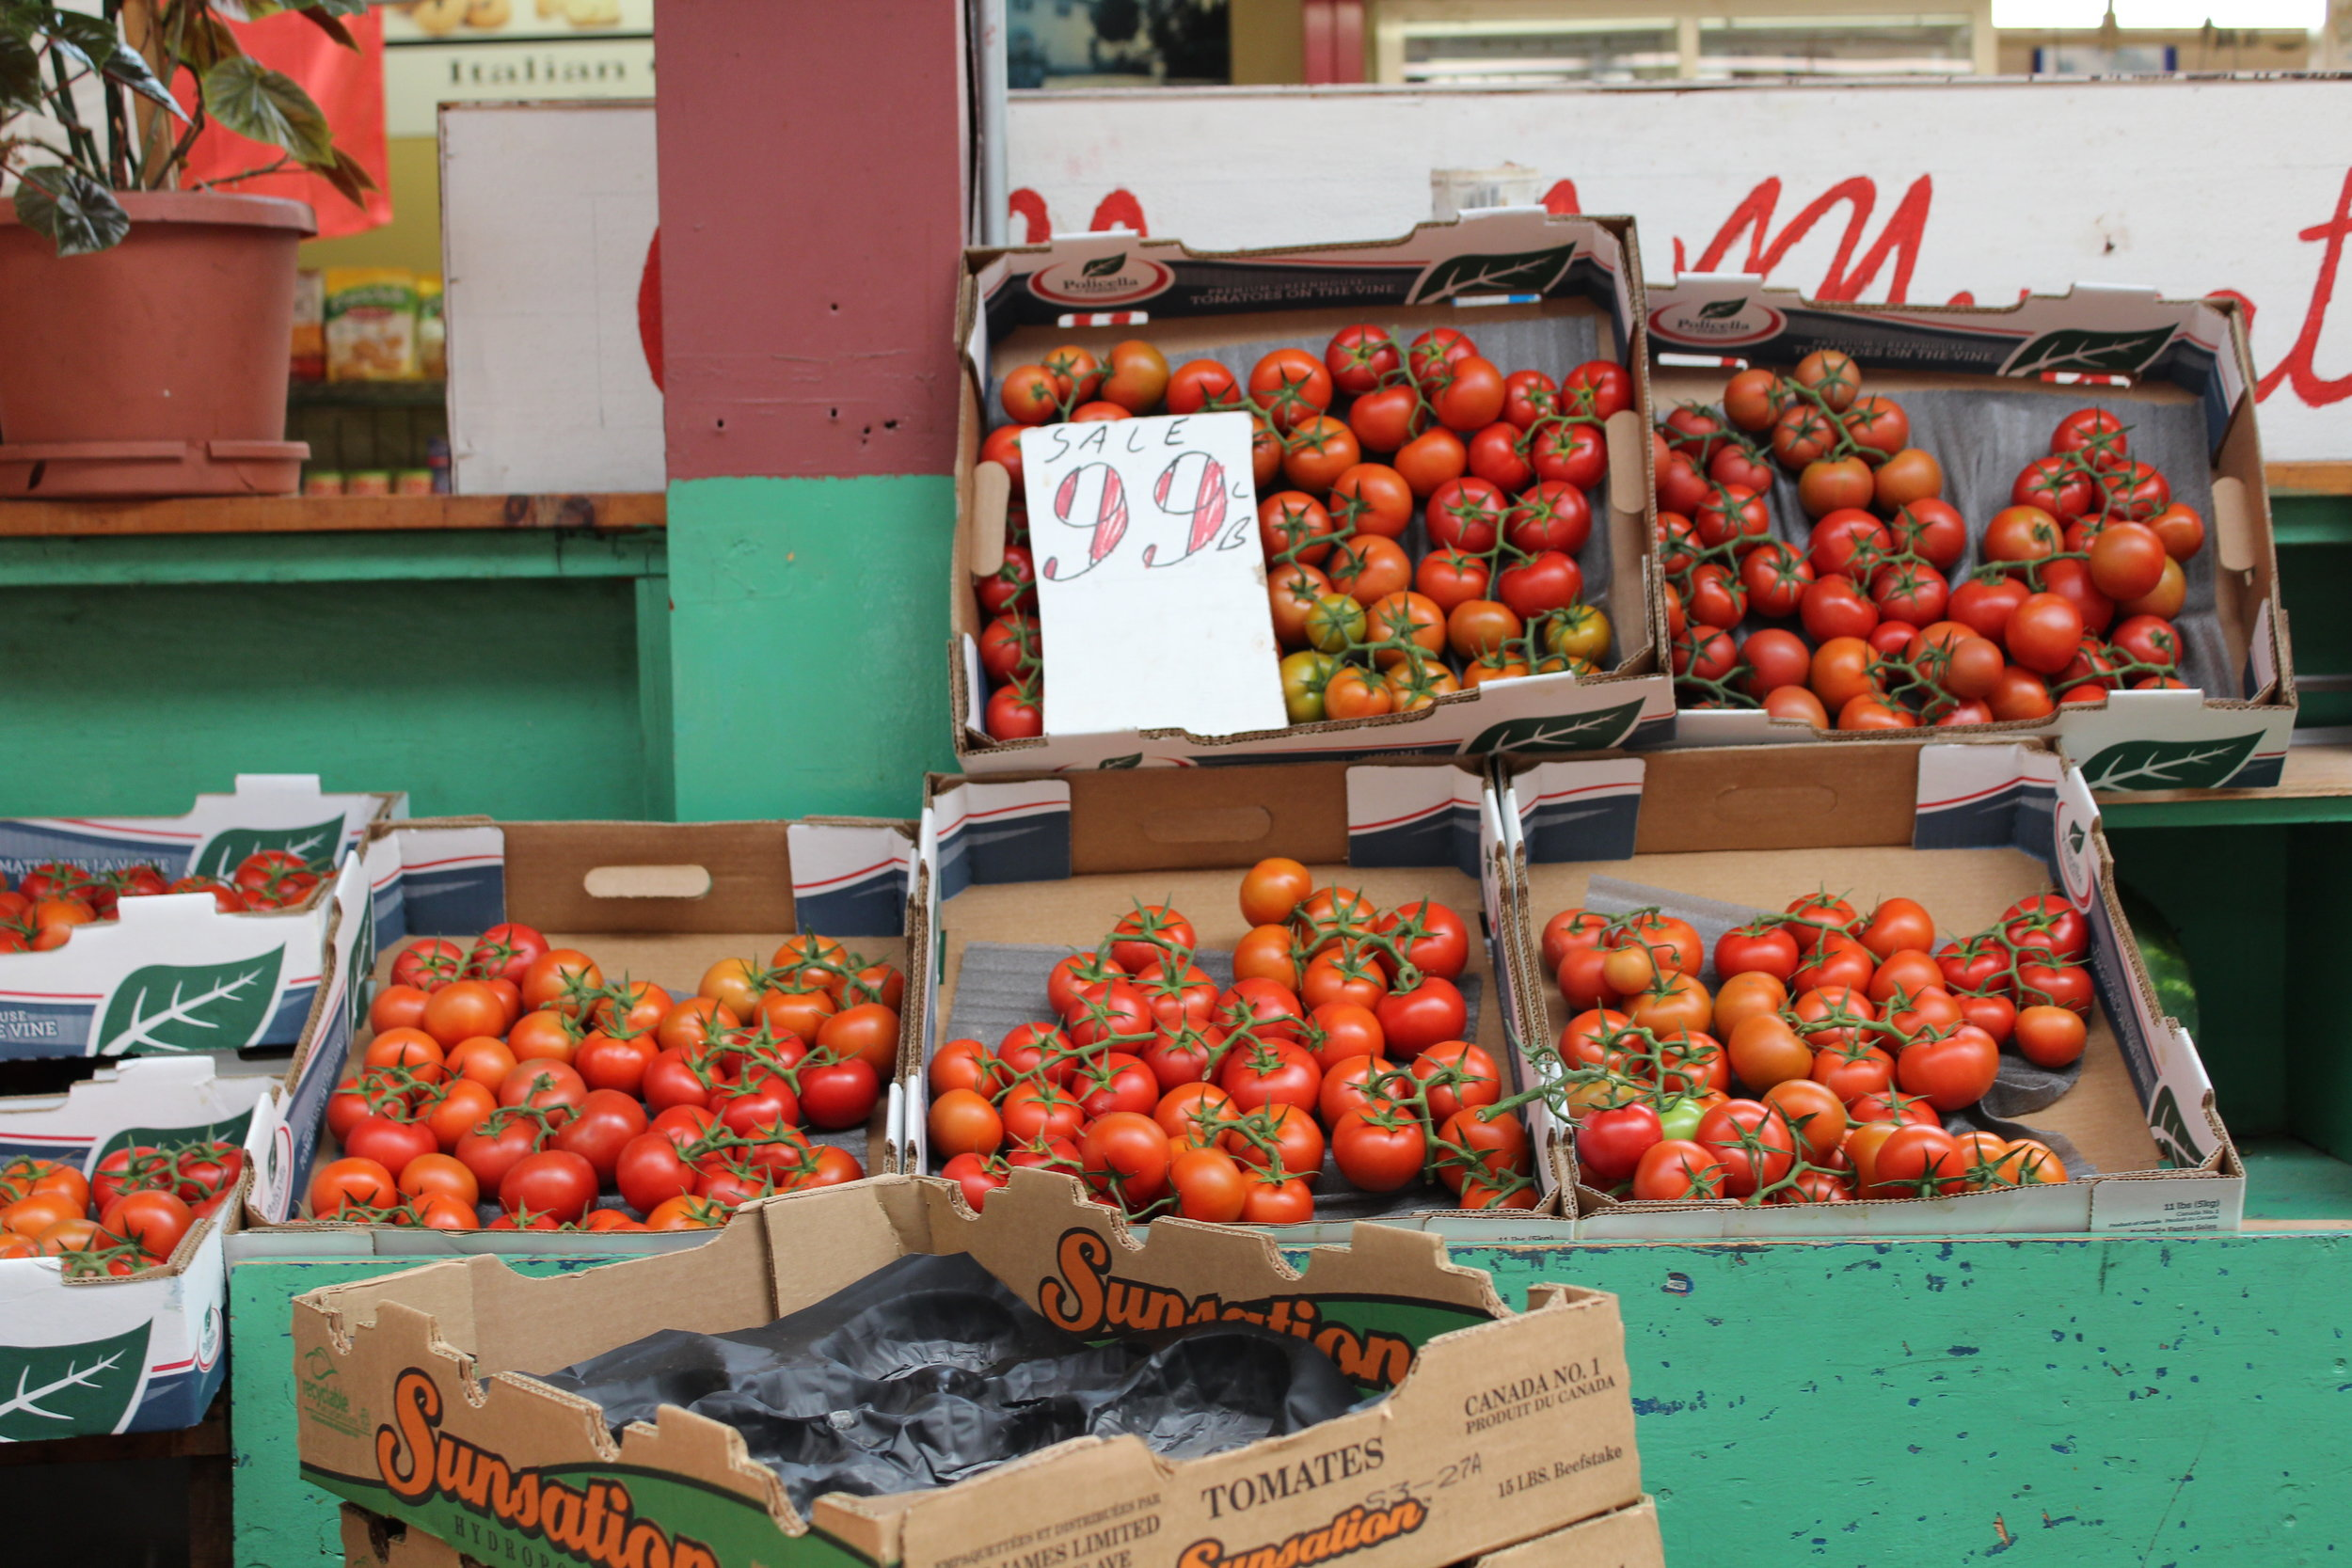 Buy tomatoes at Boiano's, the vegetable stand inside the Arthur Avenue Retail Market.